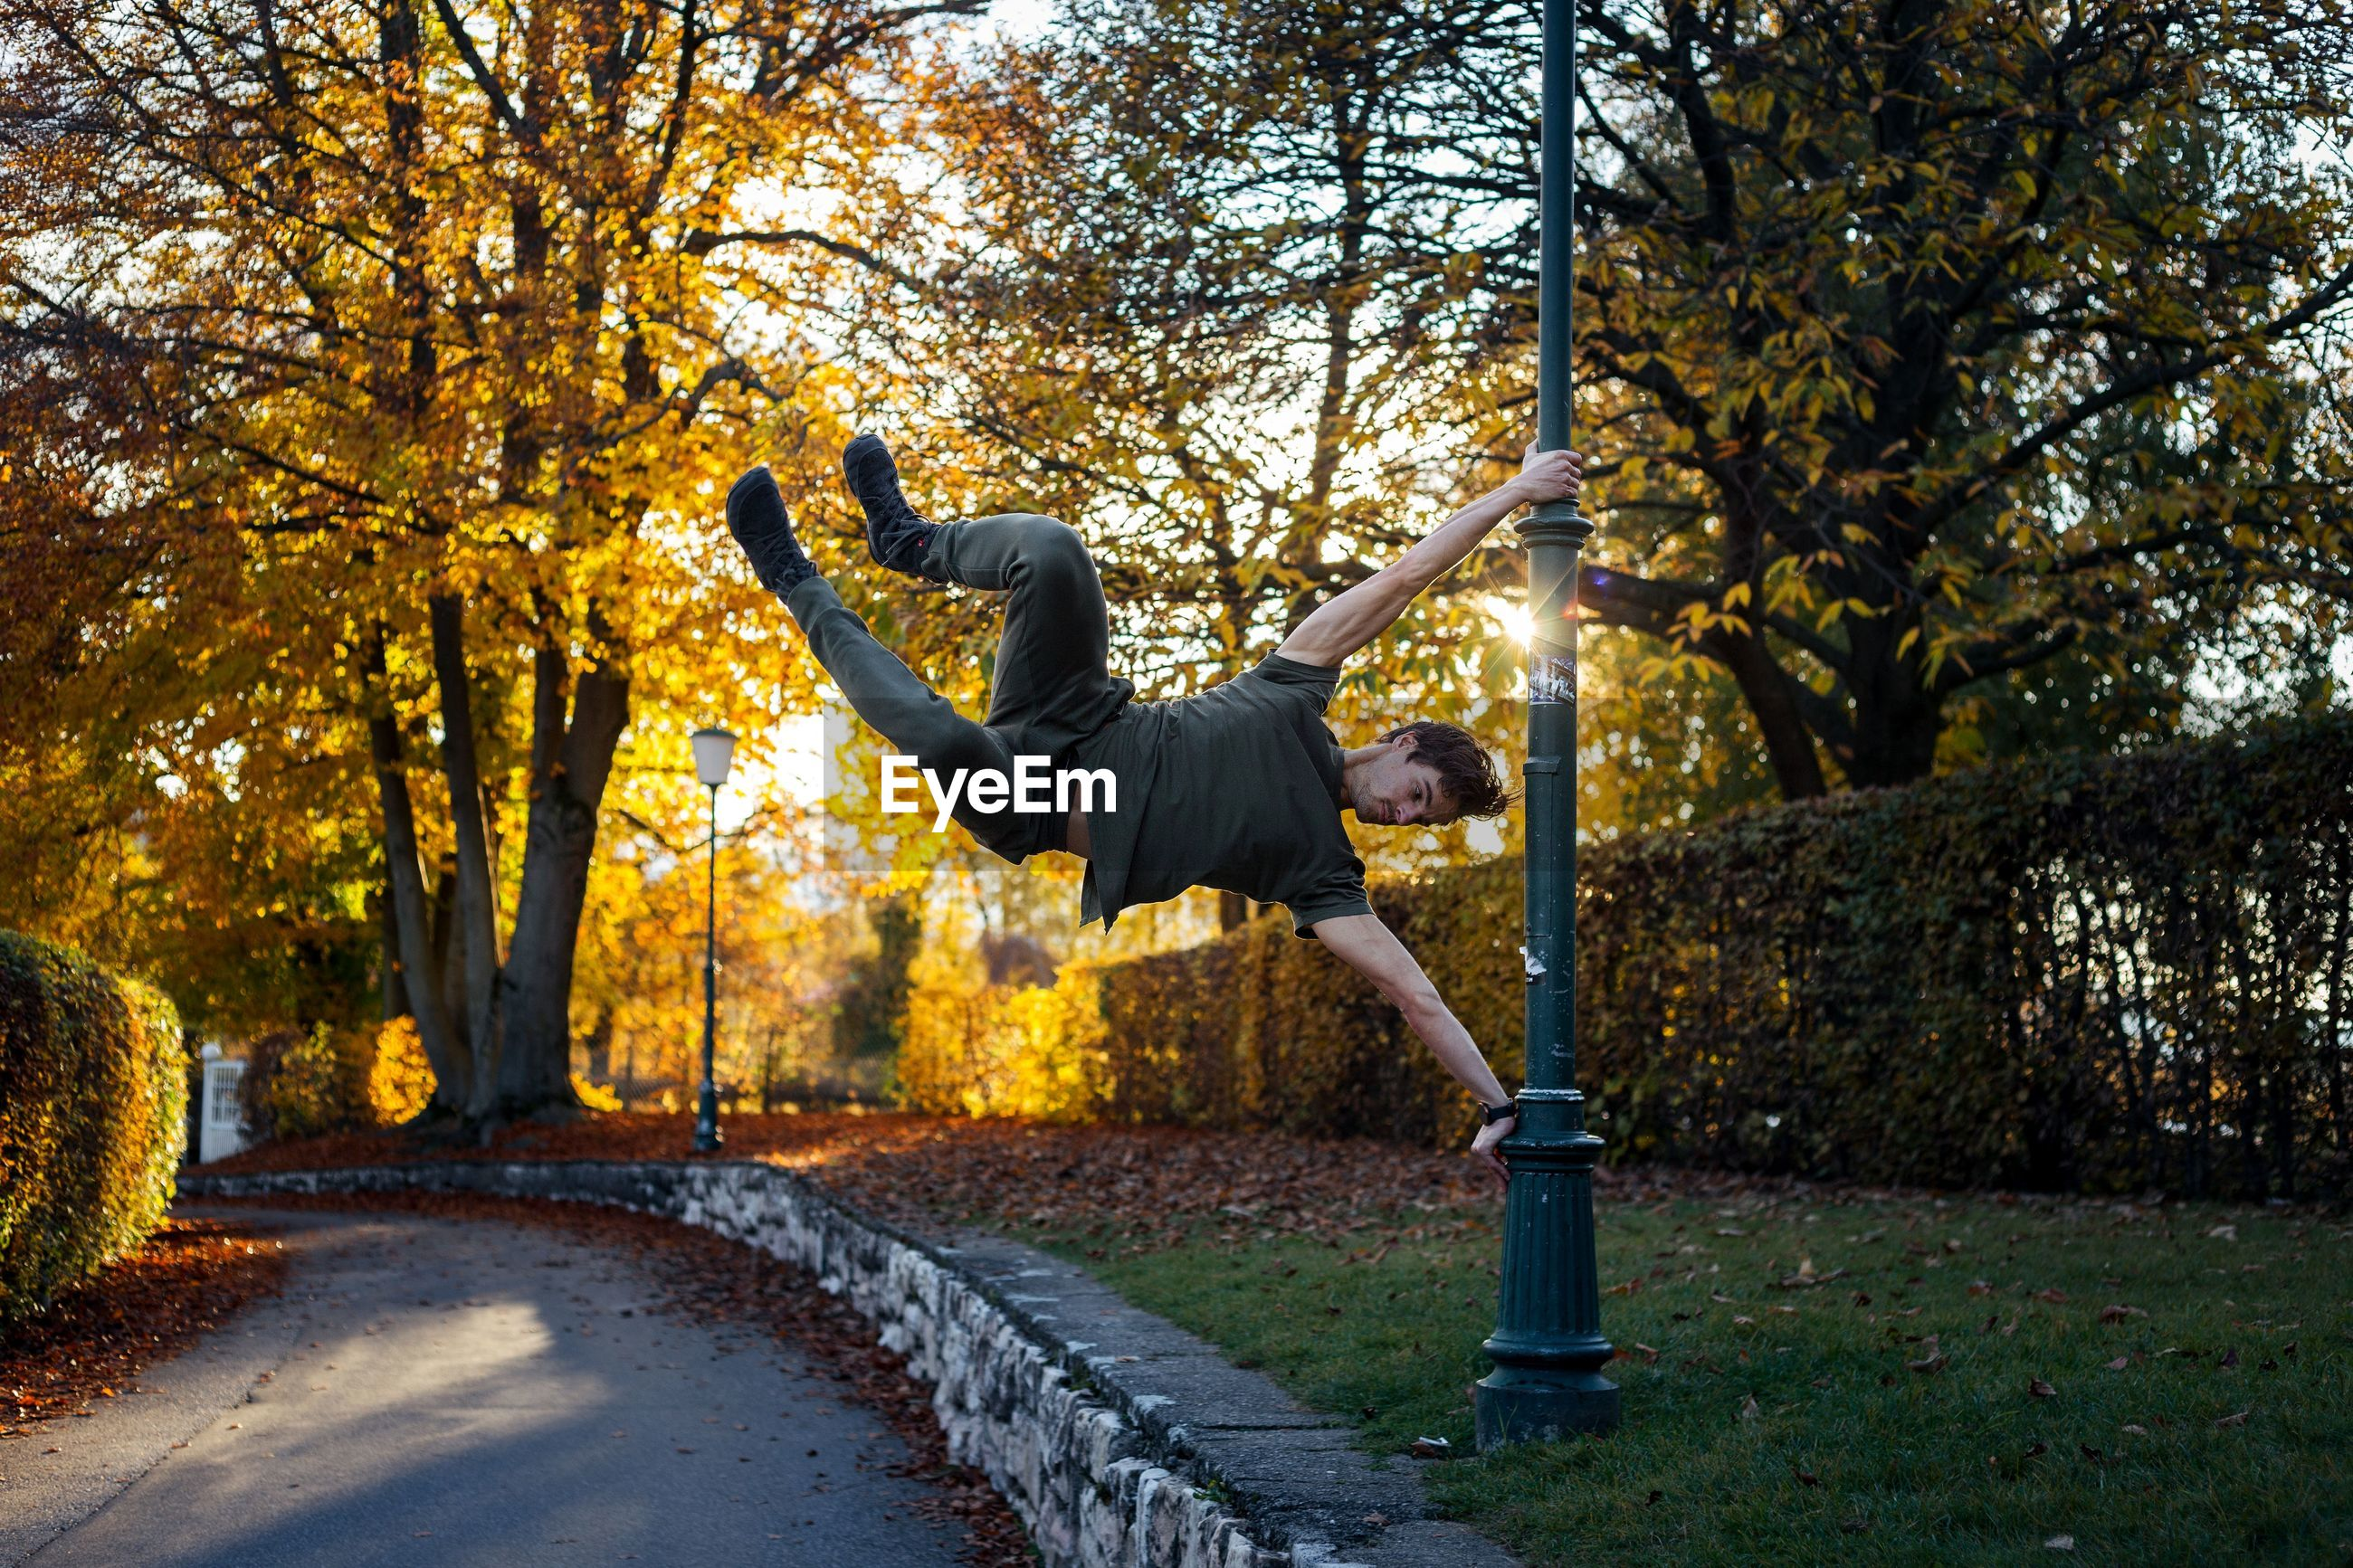 Man hanging on pole in park during autumn